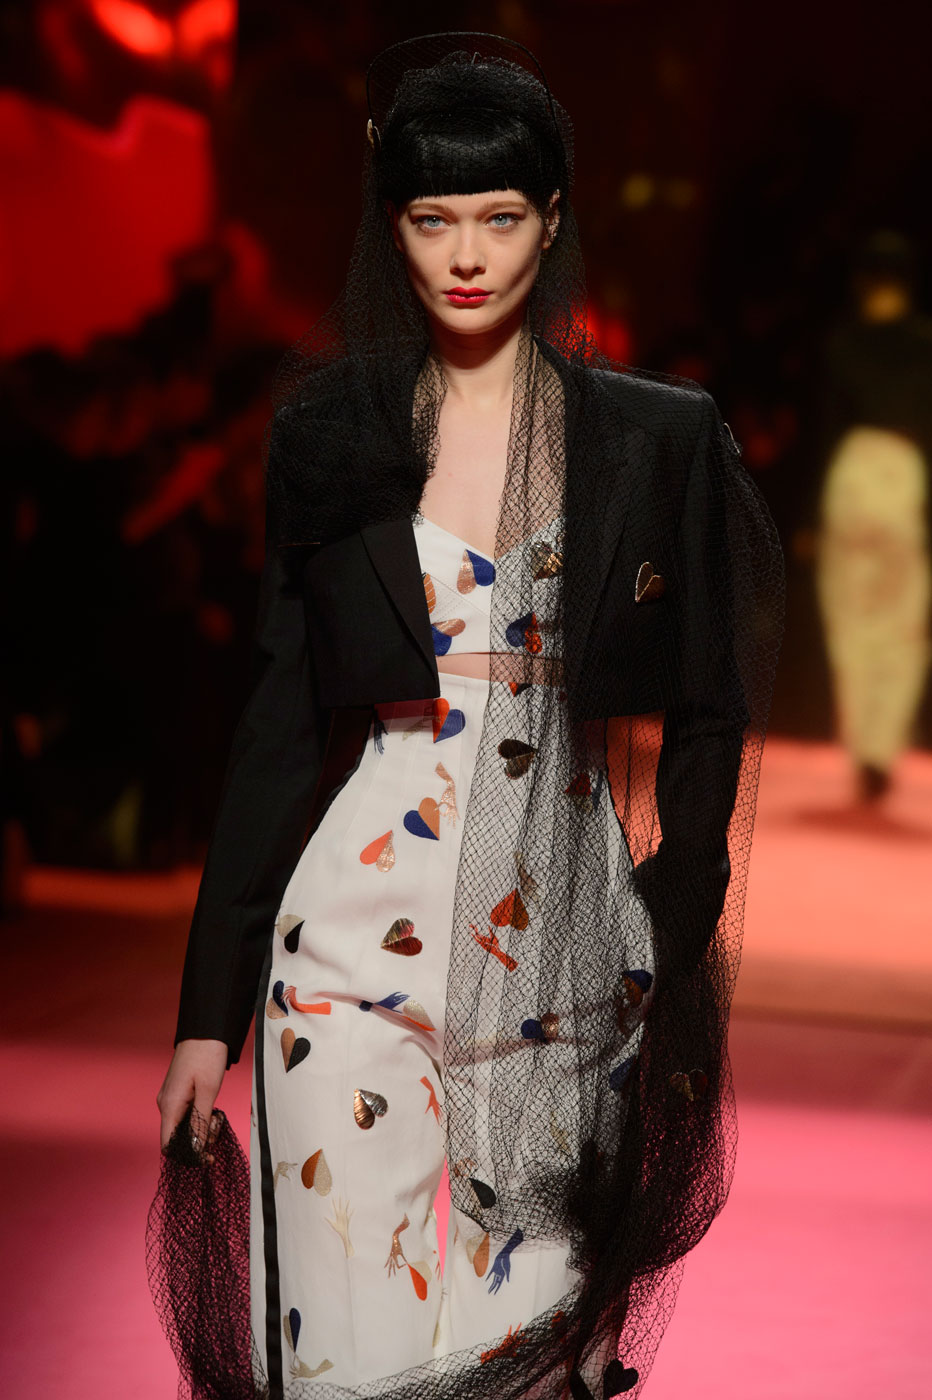 Schiaparelli-fashion-runway-show-haute-couture-paris-spring-summer-2015-the-impression-18